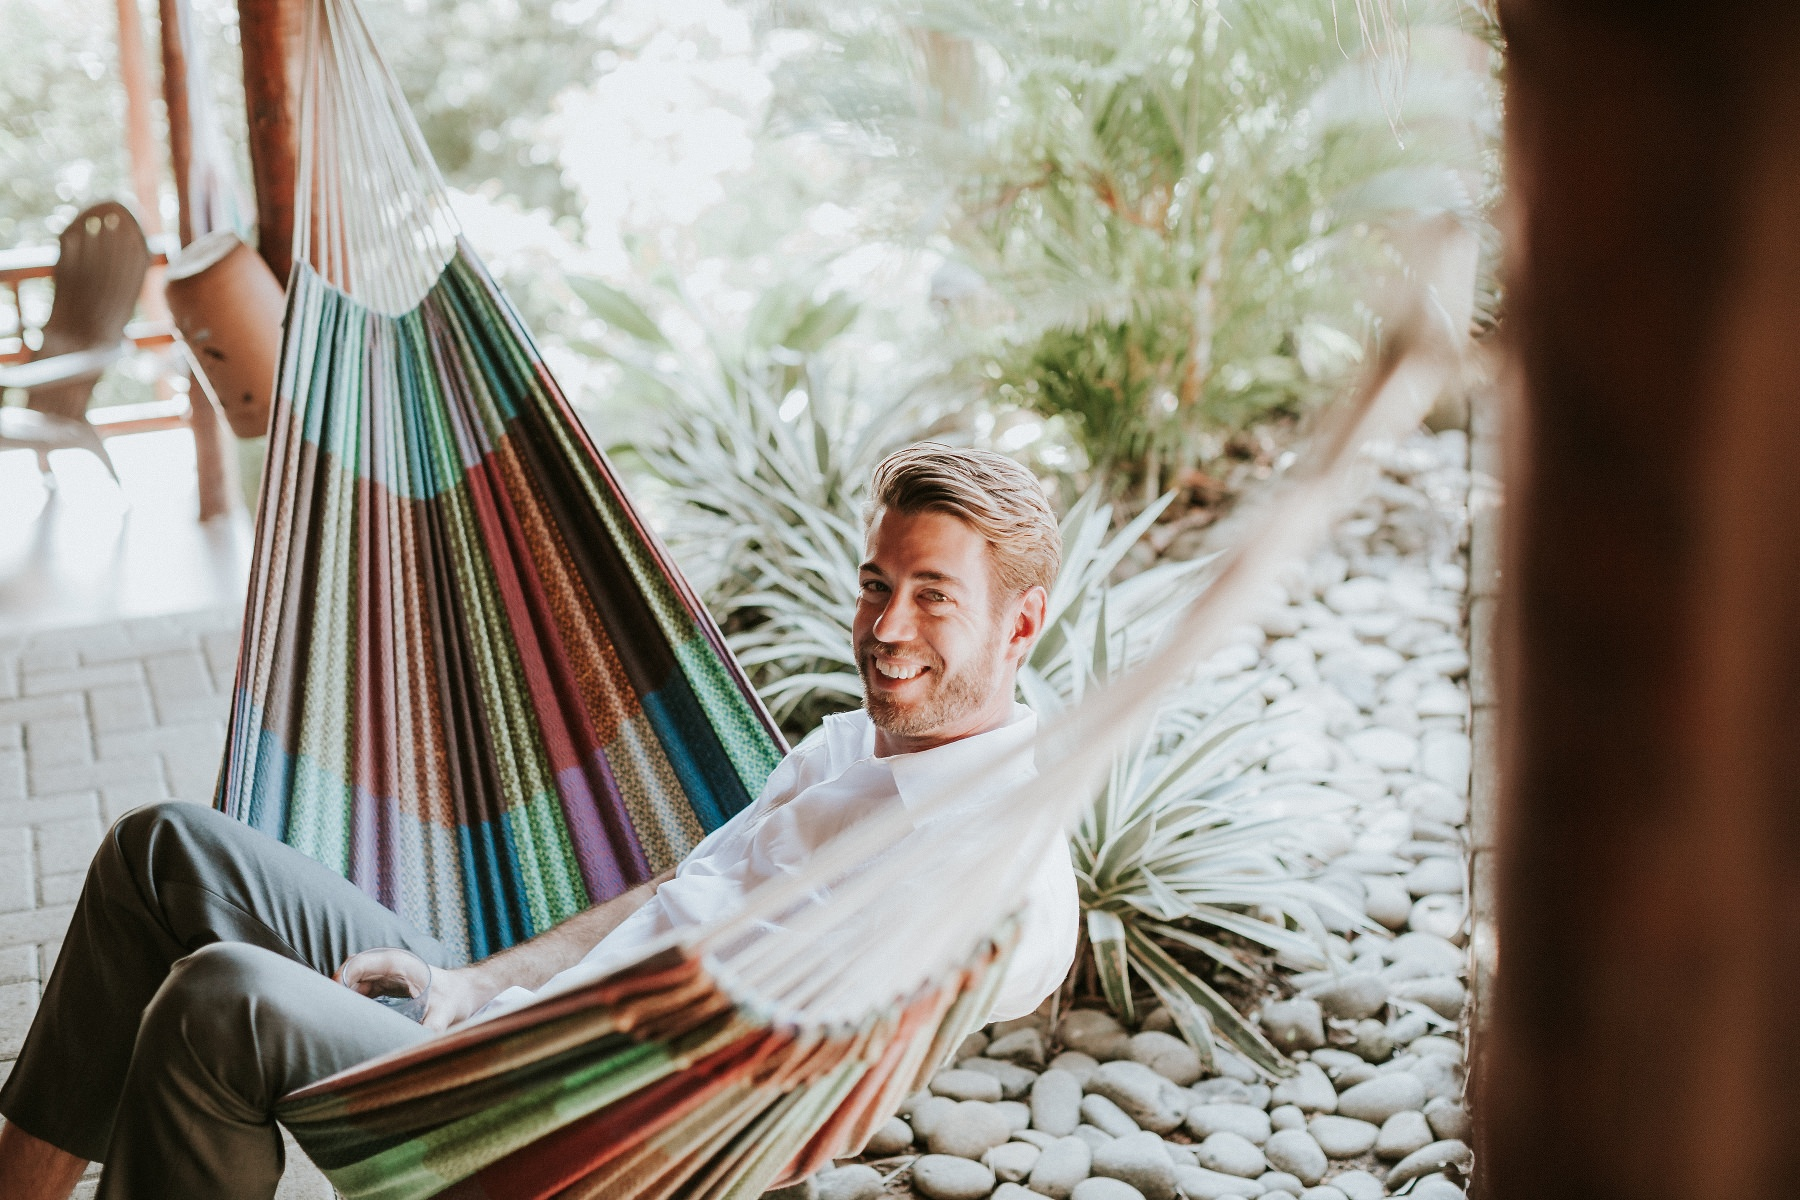 chilling in a hammock before the wedding